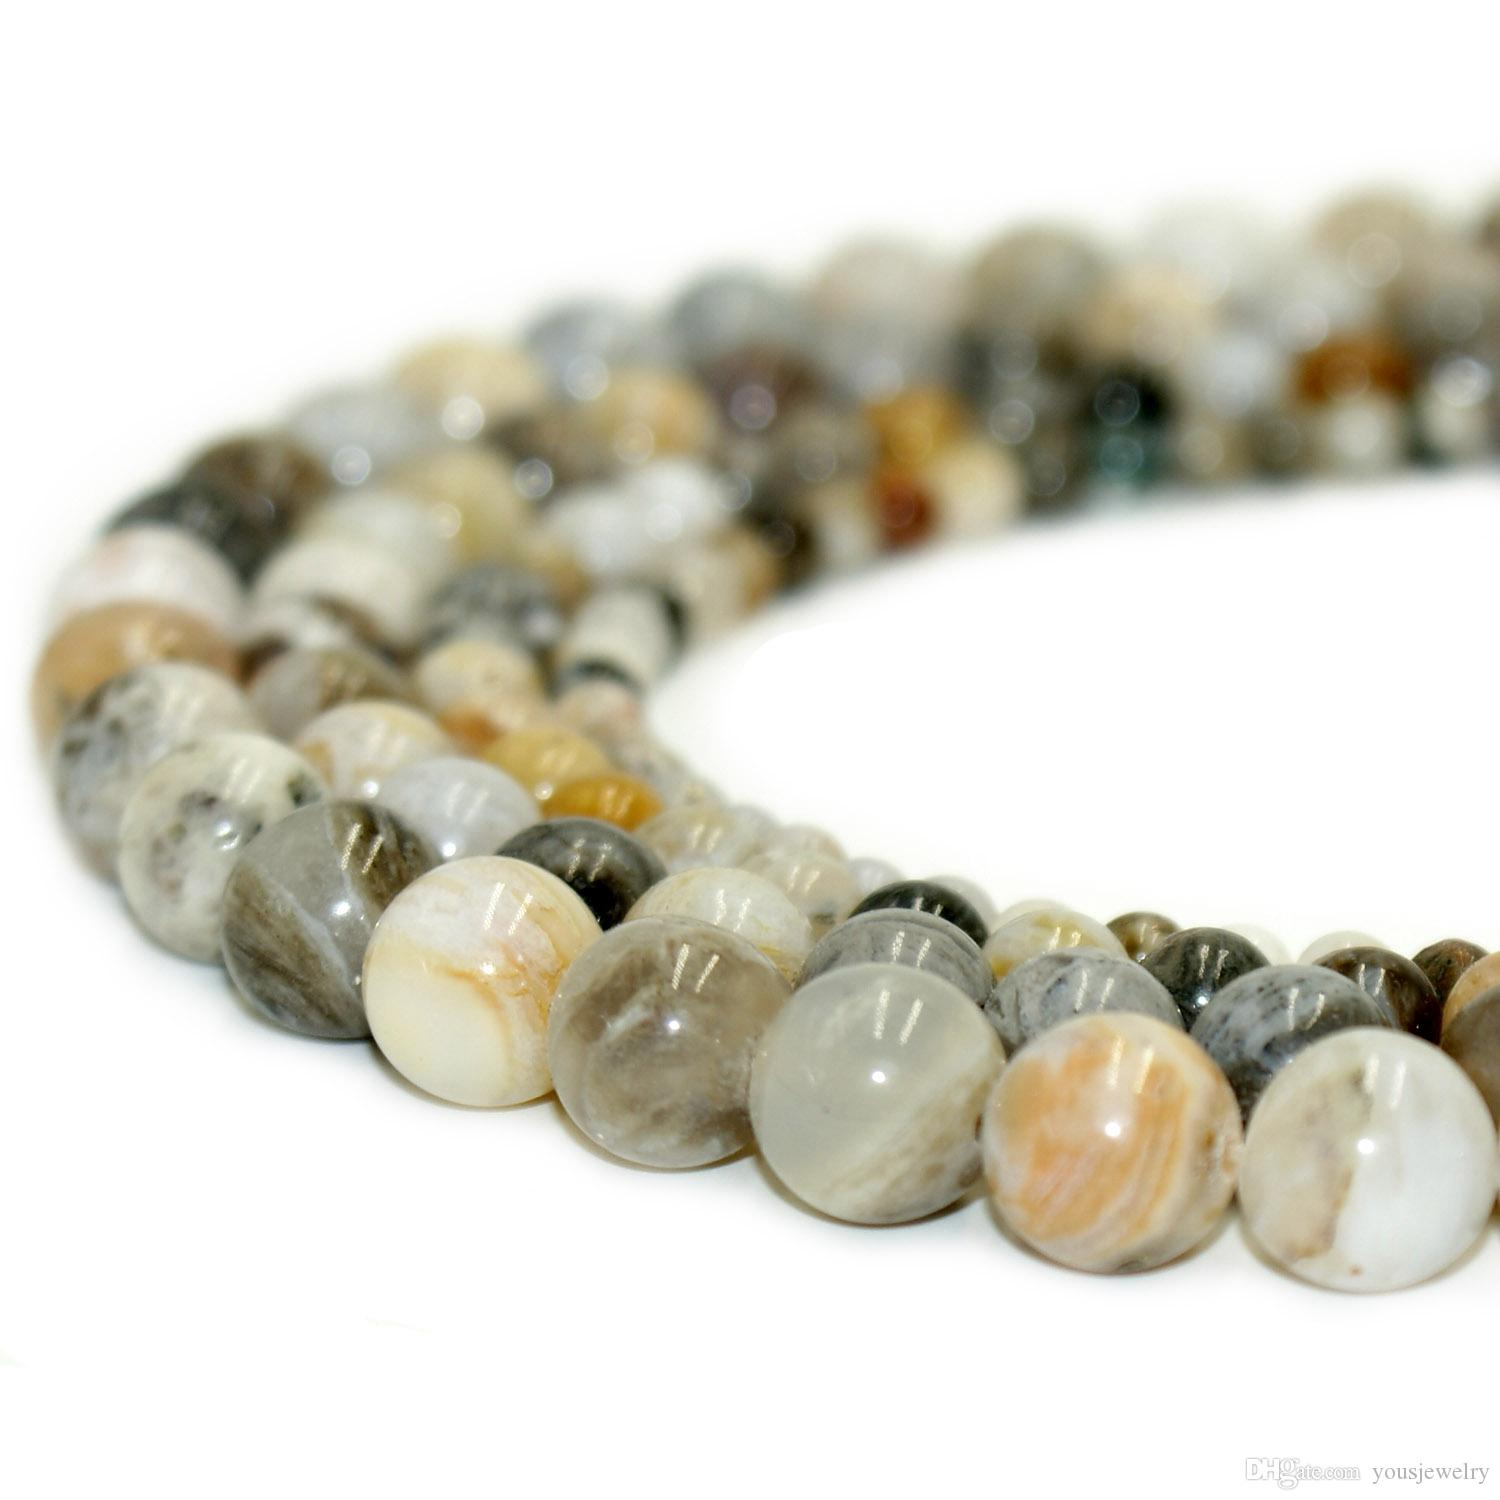 1 strand Natural Aquamarin Agat Stone Loose Spacer Beads Bracelet Jewelry Making